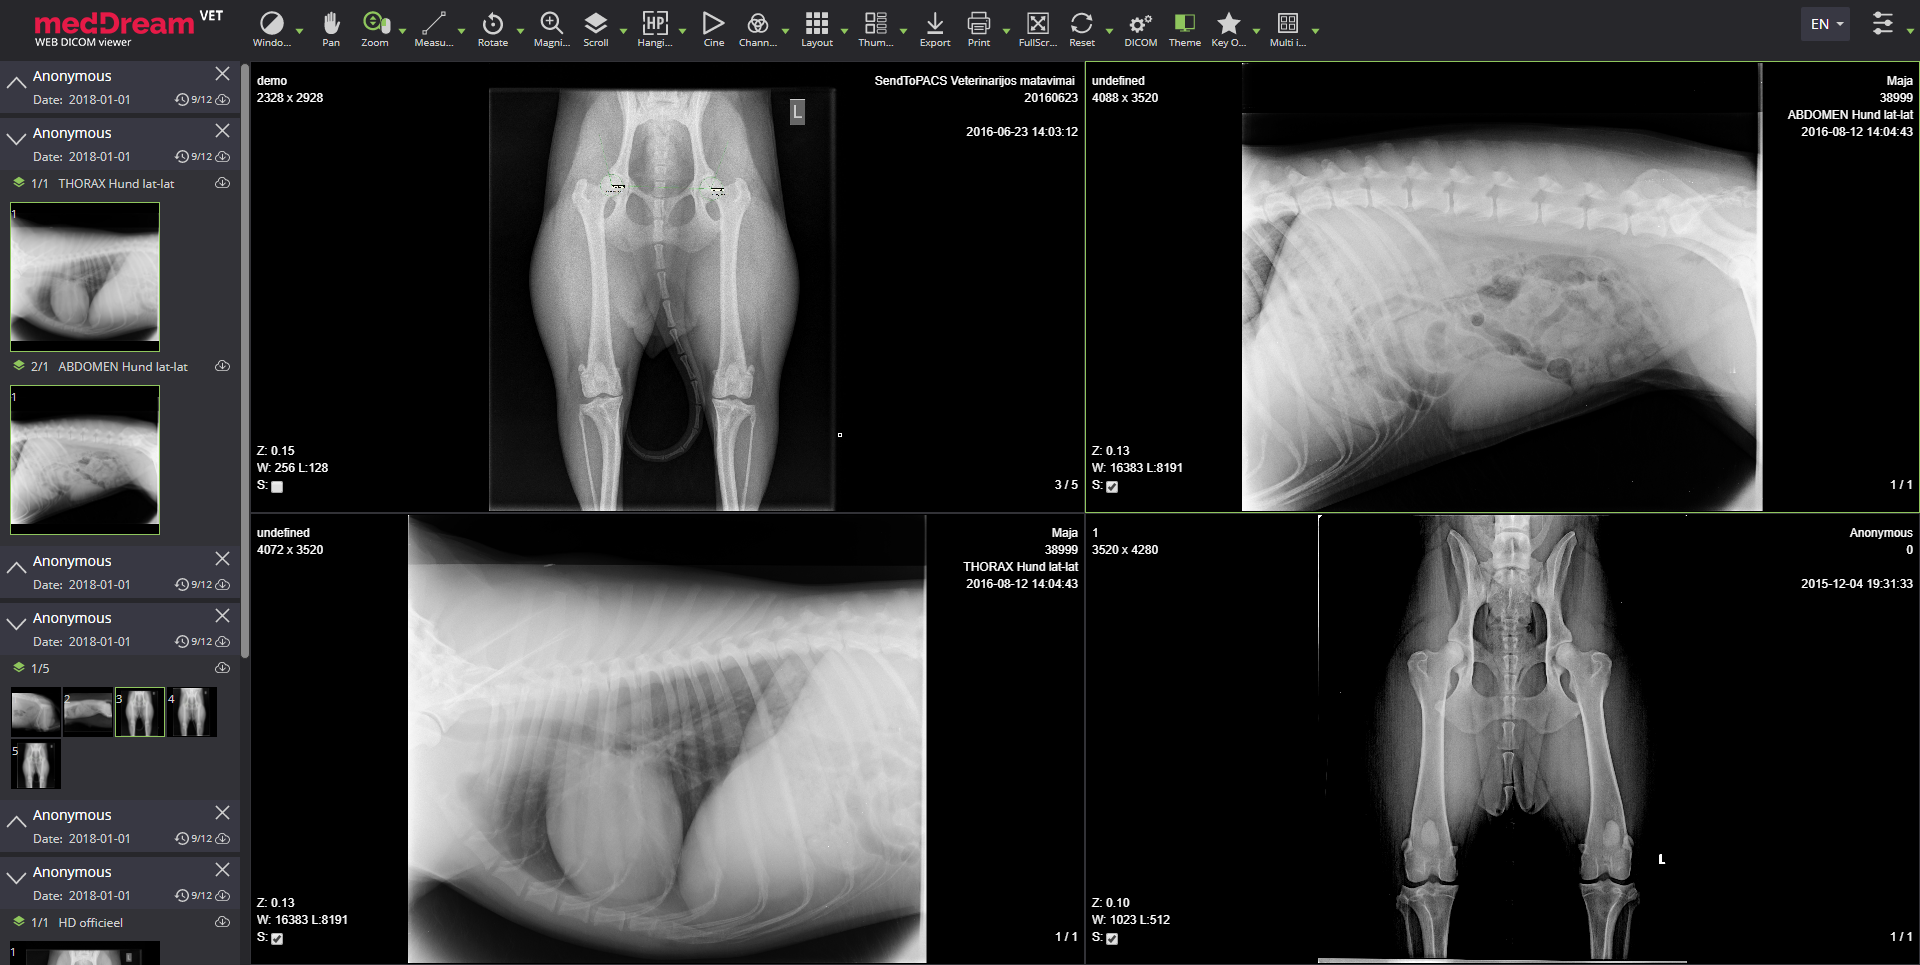 Meddream Vet Dicom Viewer Radiology